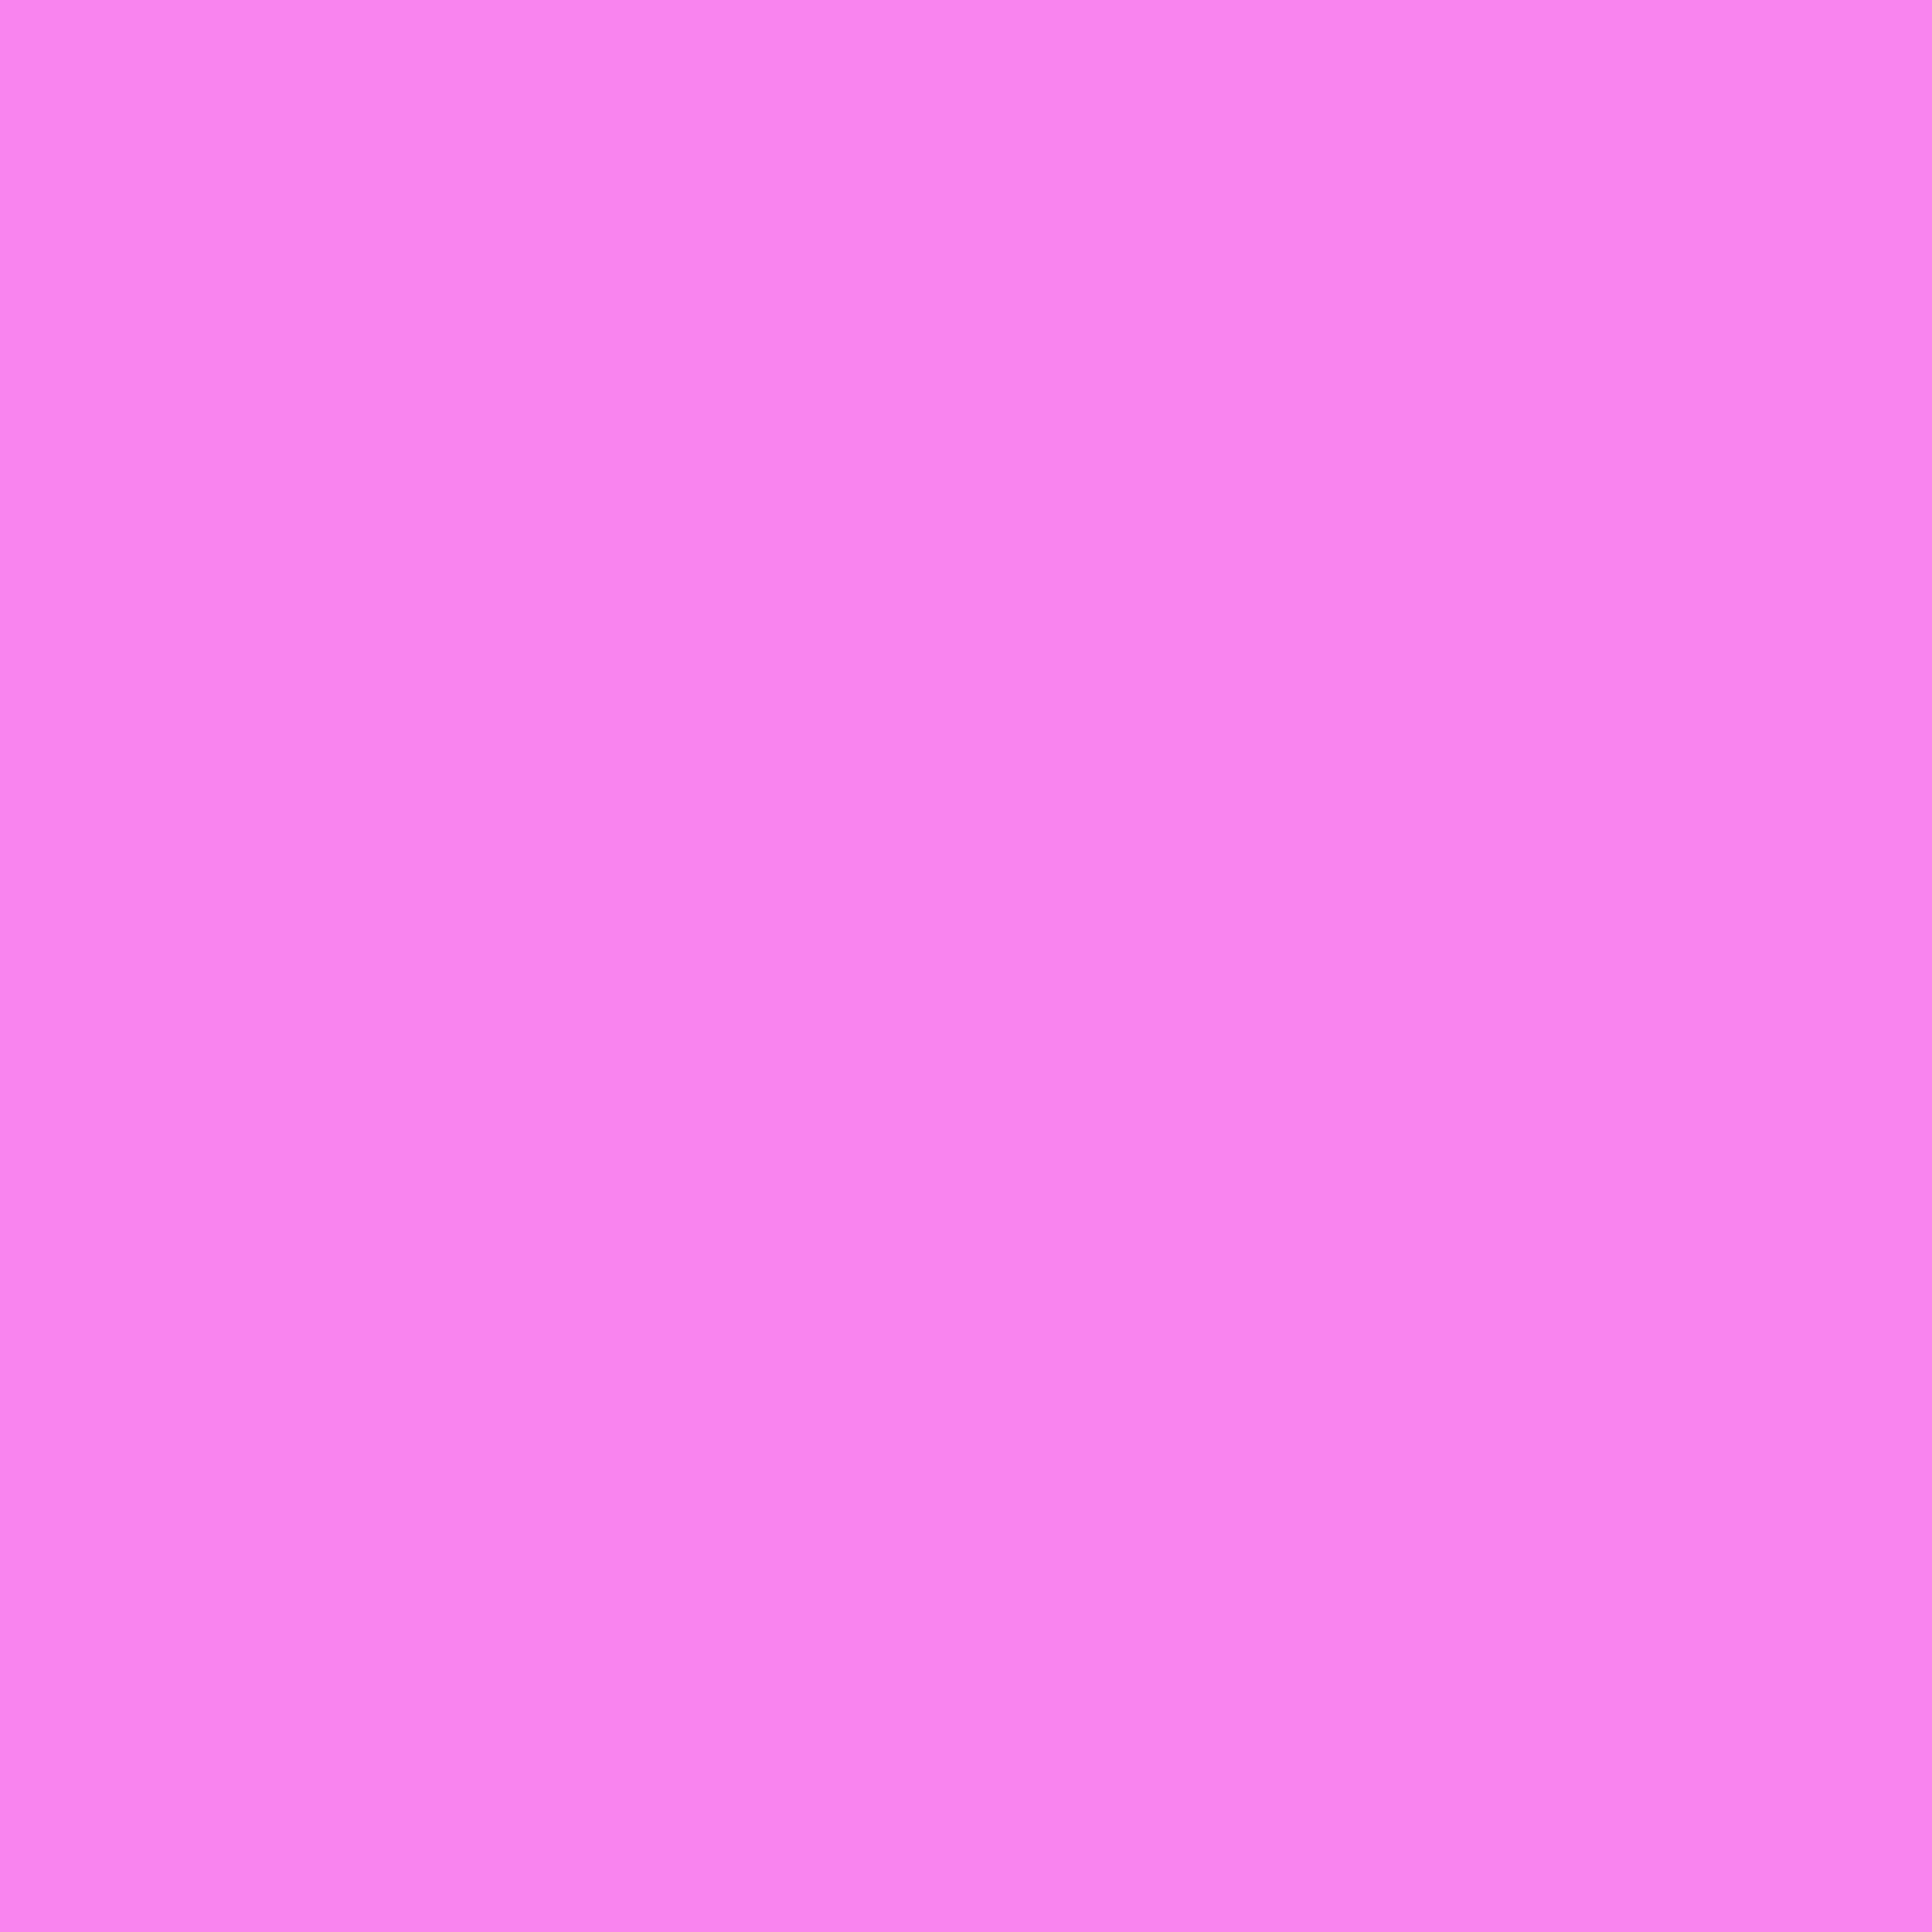 2732x2732 Light Fuchsia Pink Solid Color Background